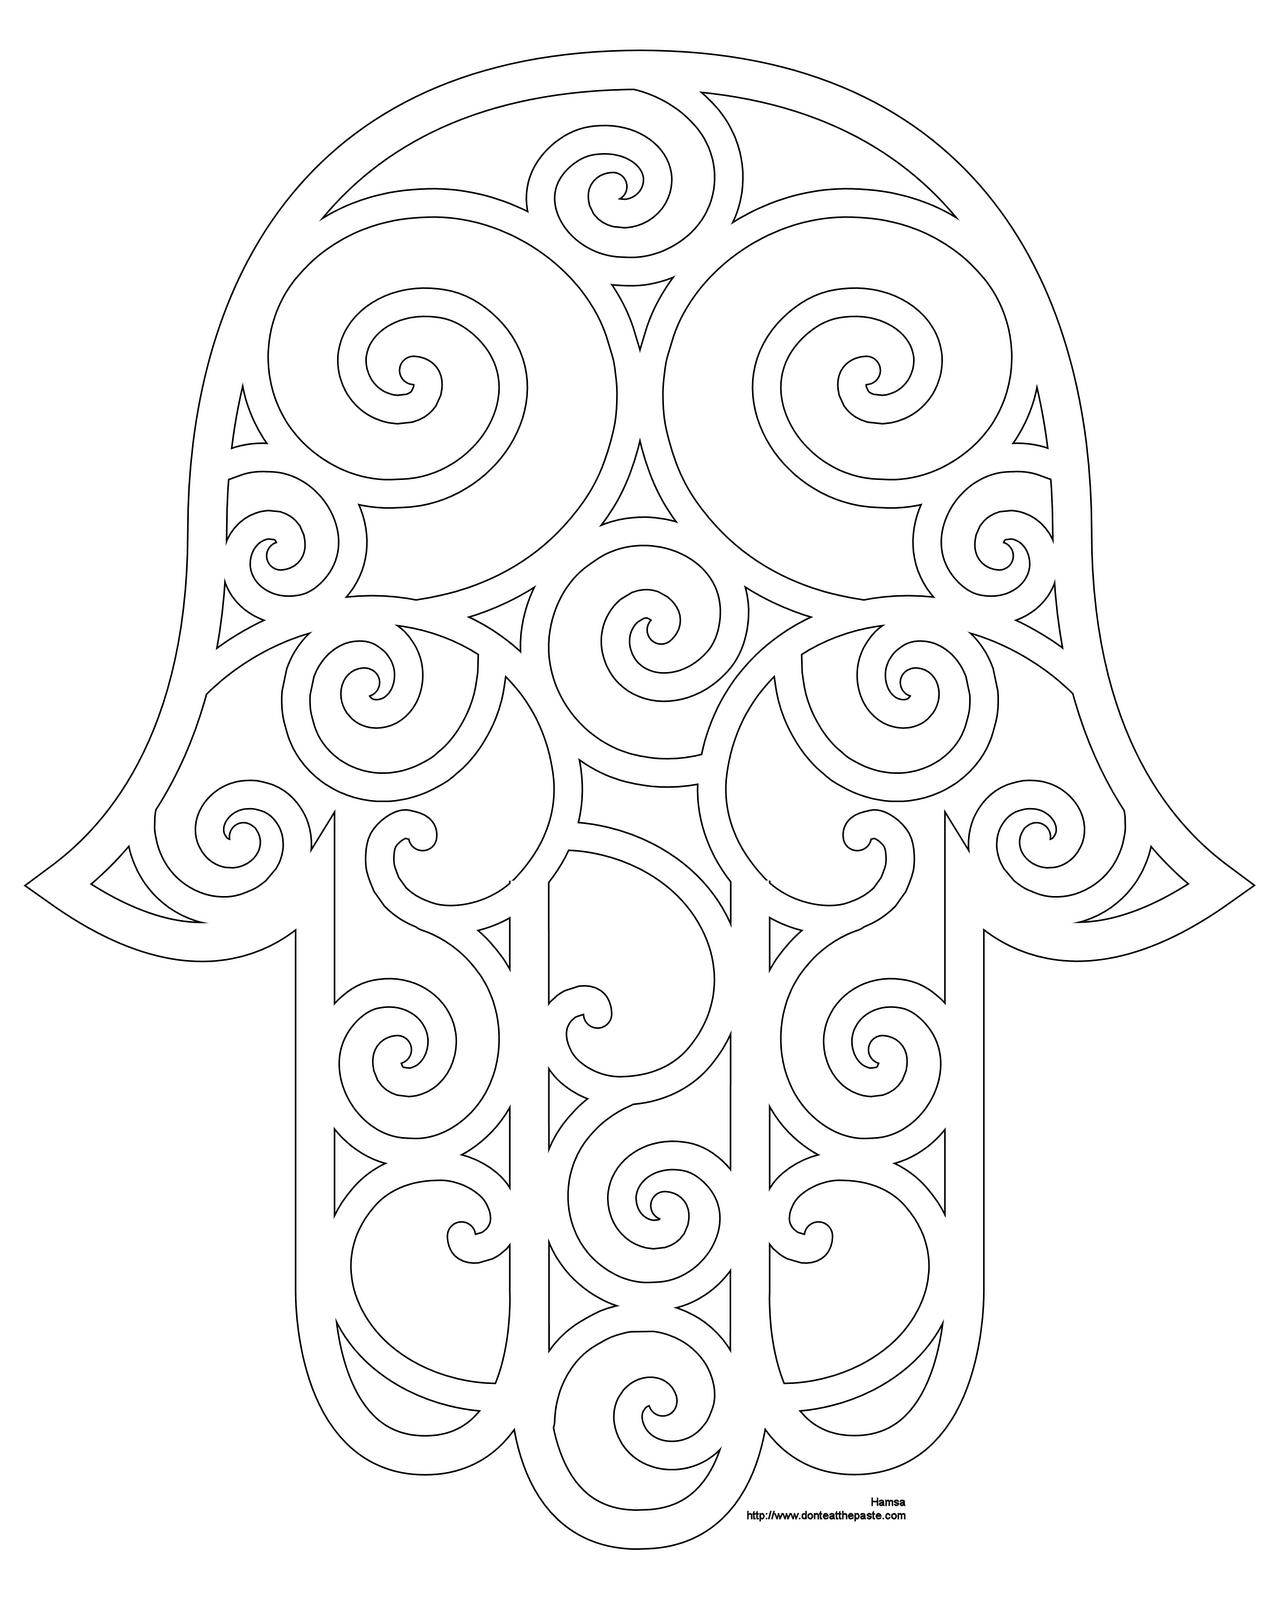 Bead Embroidery Template